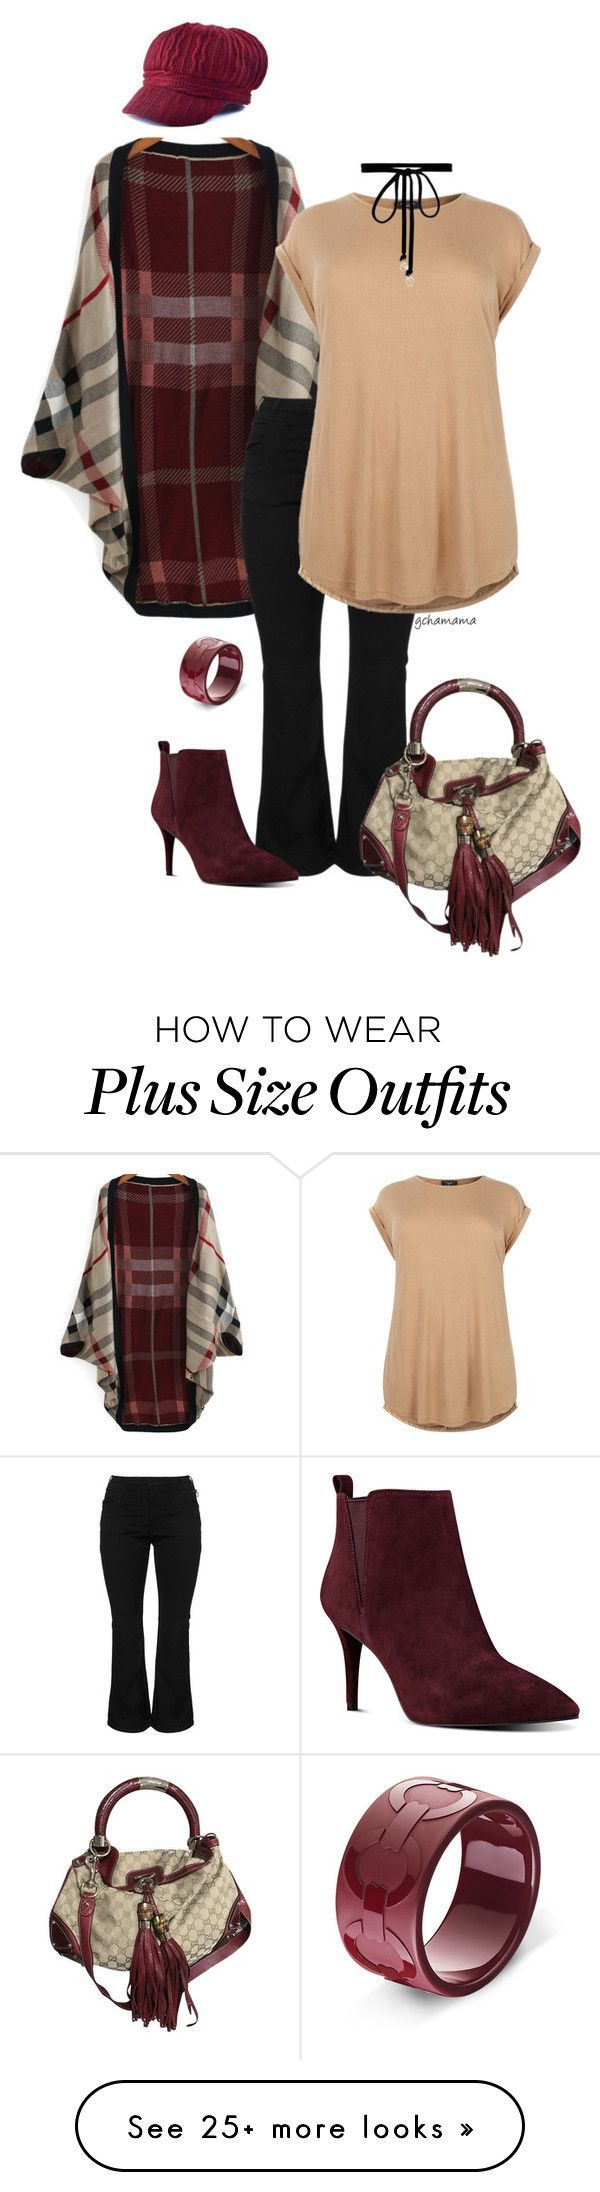 """""""Look deeper- plus size"""" by gchamama on Polyvore featuring Zizzi, Nine West, Gucci, Joomi Lim and plus size clothing"""